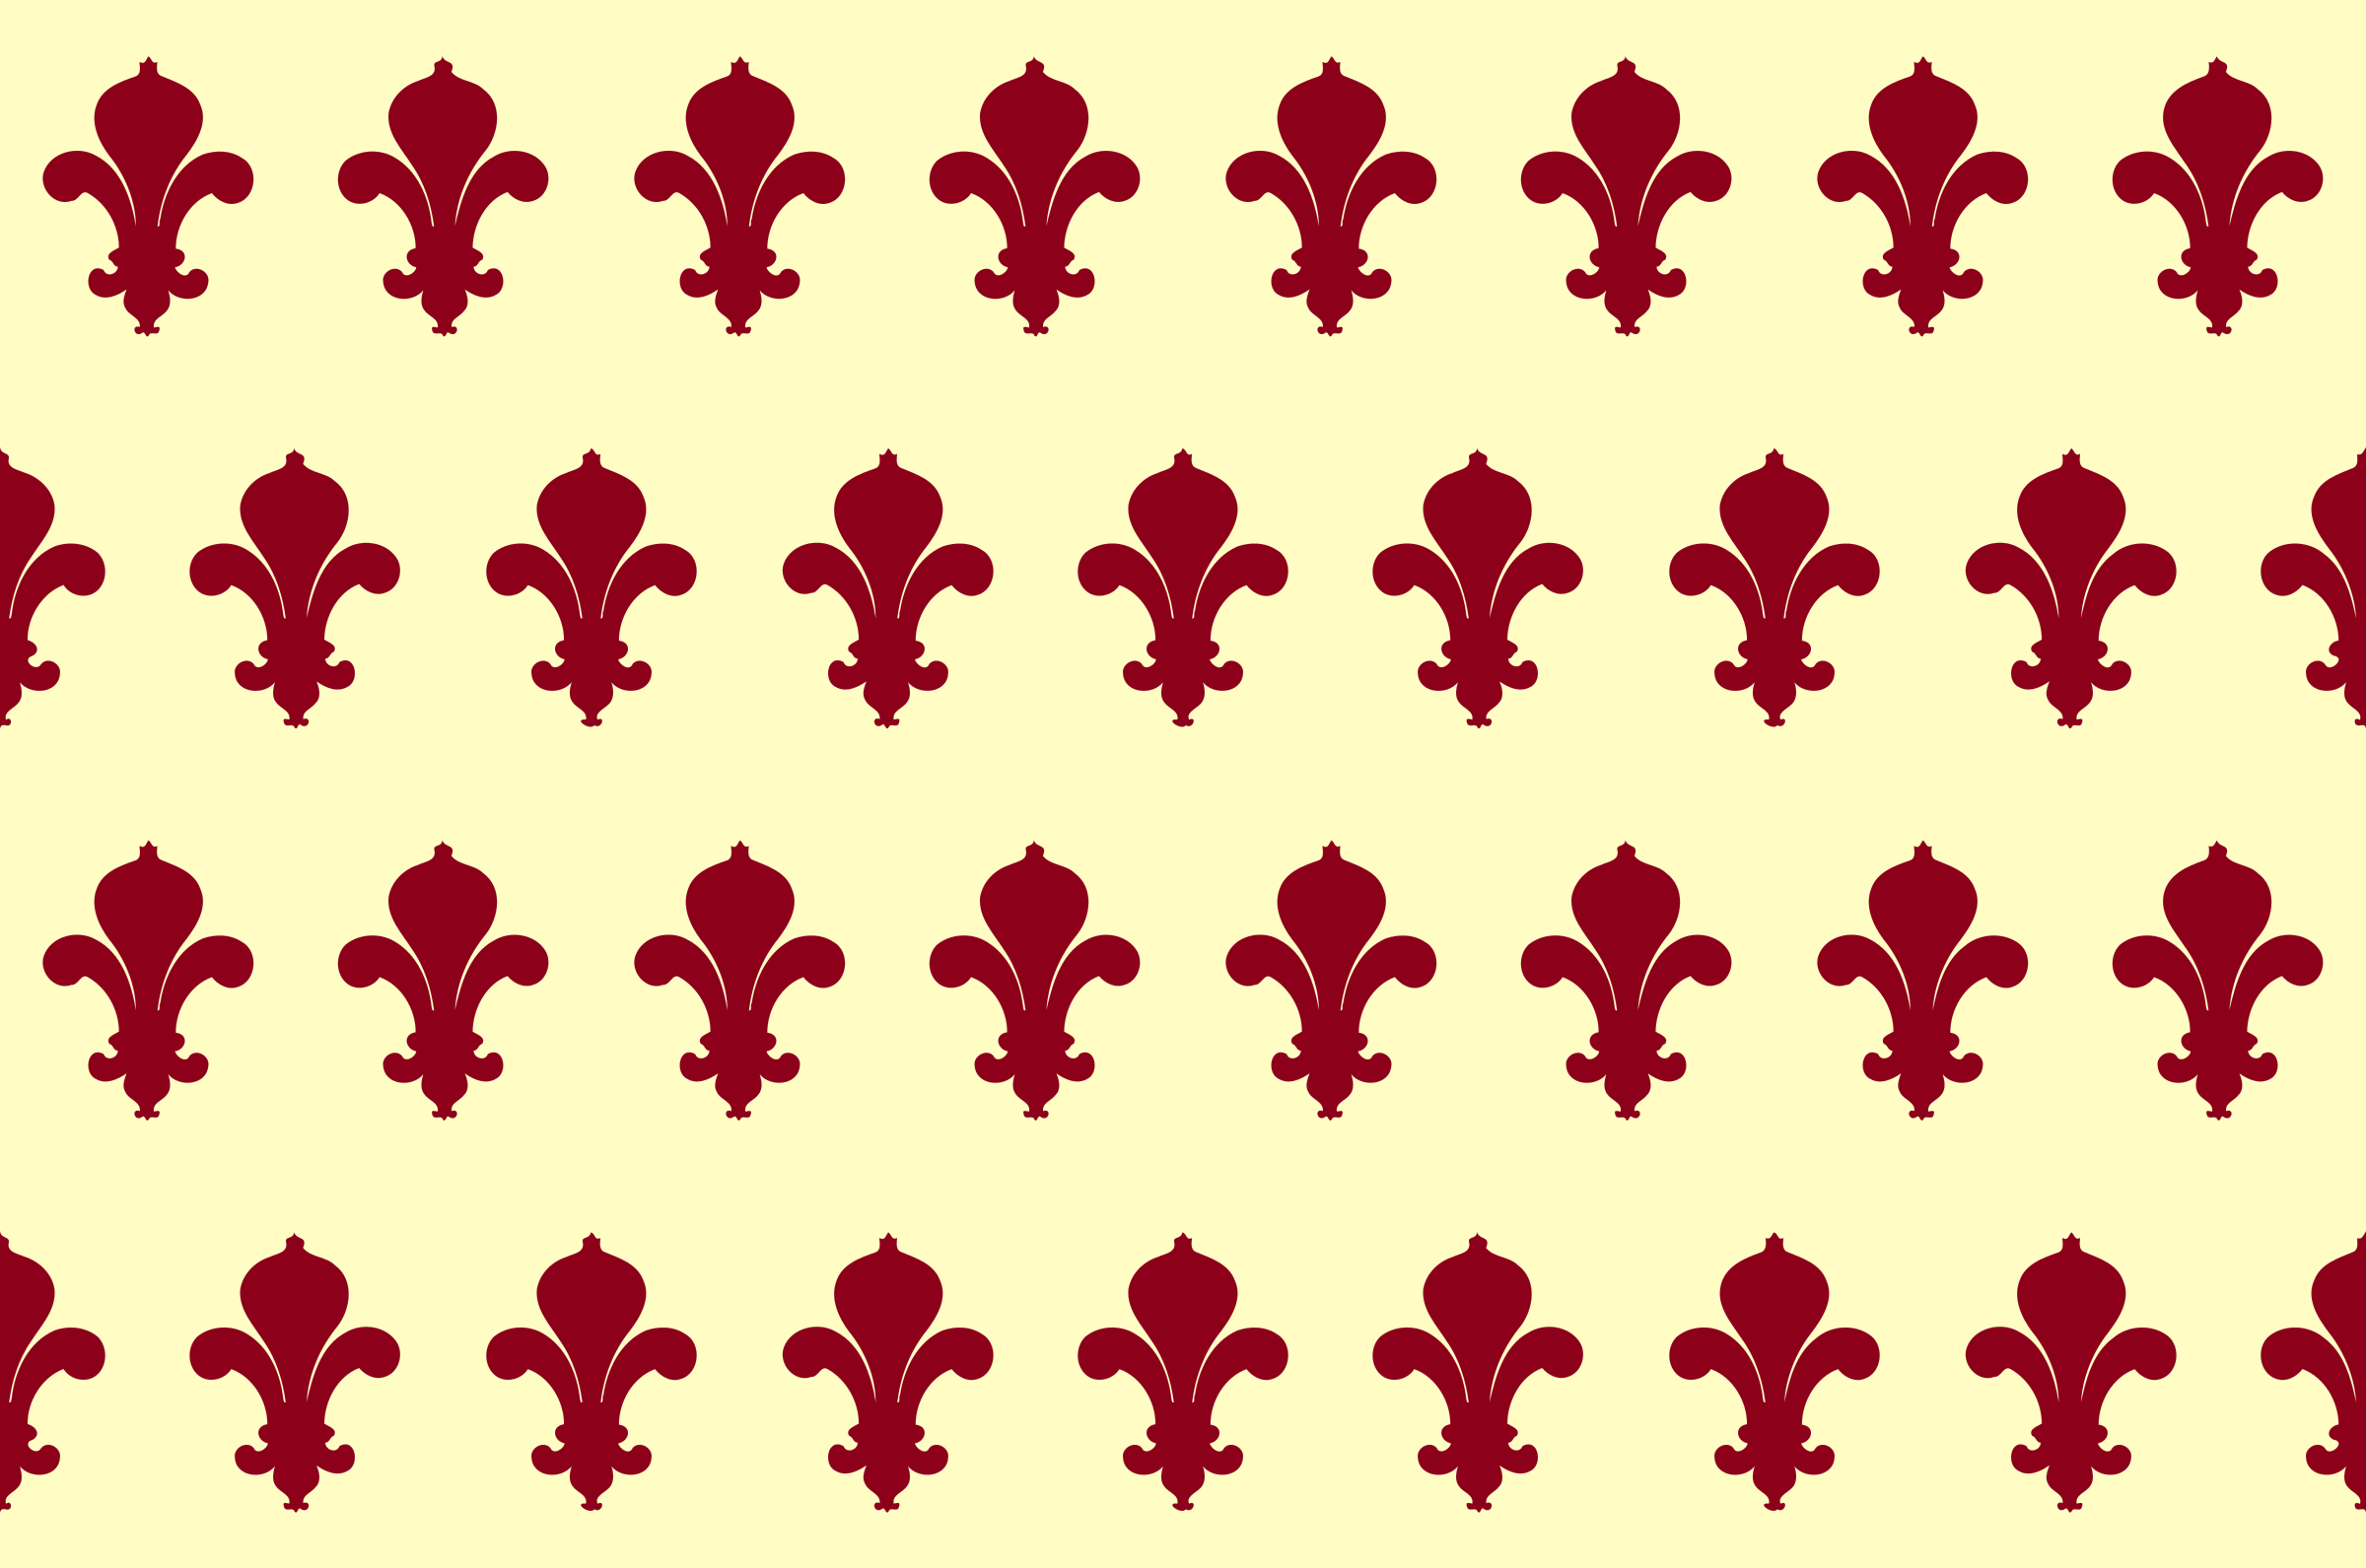 Fleurs de lys pattern (colour 2) by Firkin